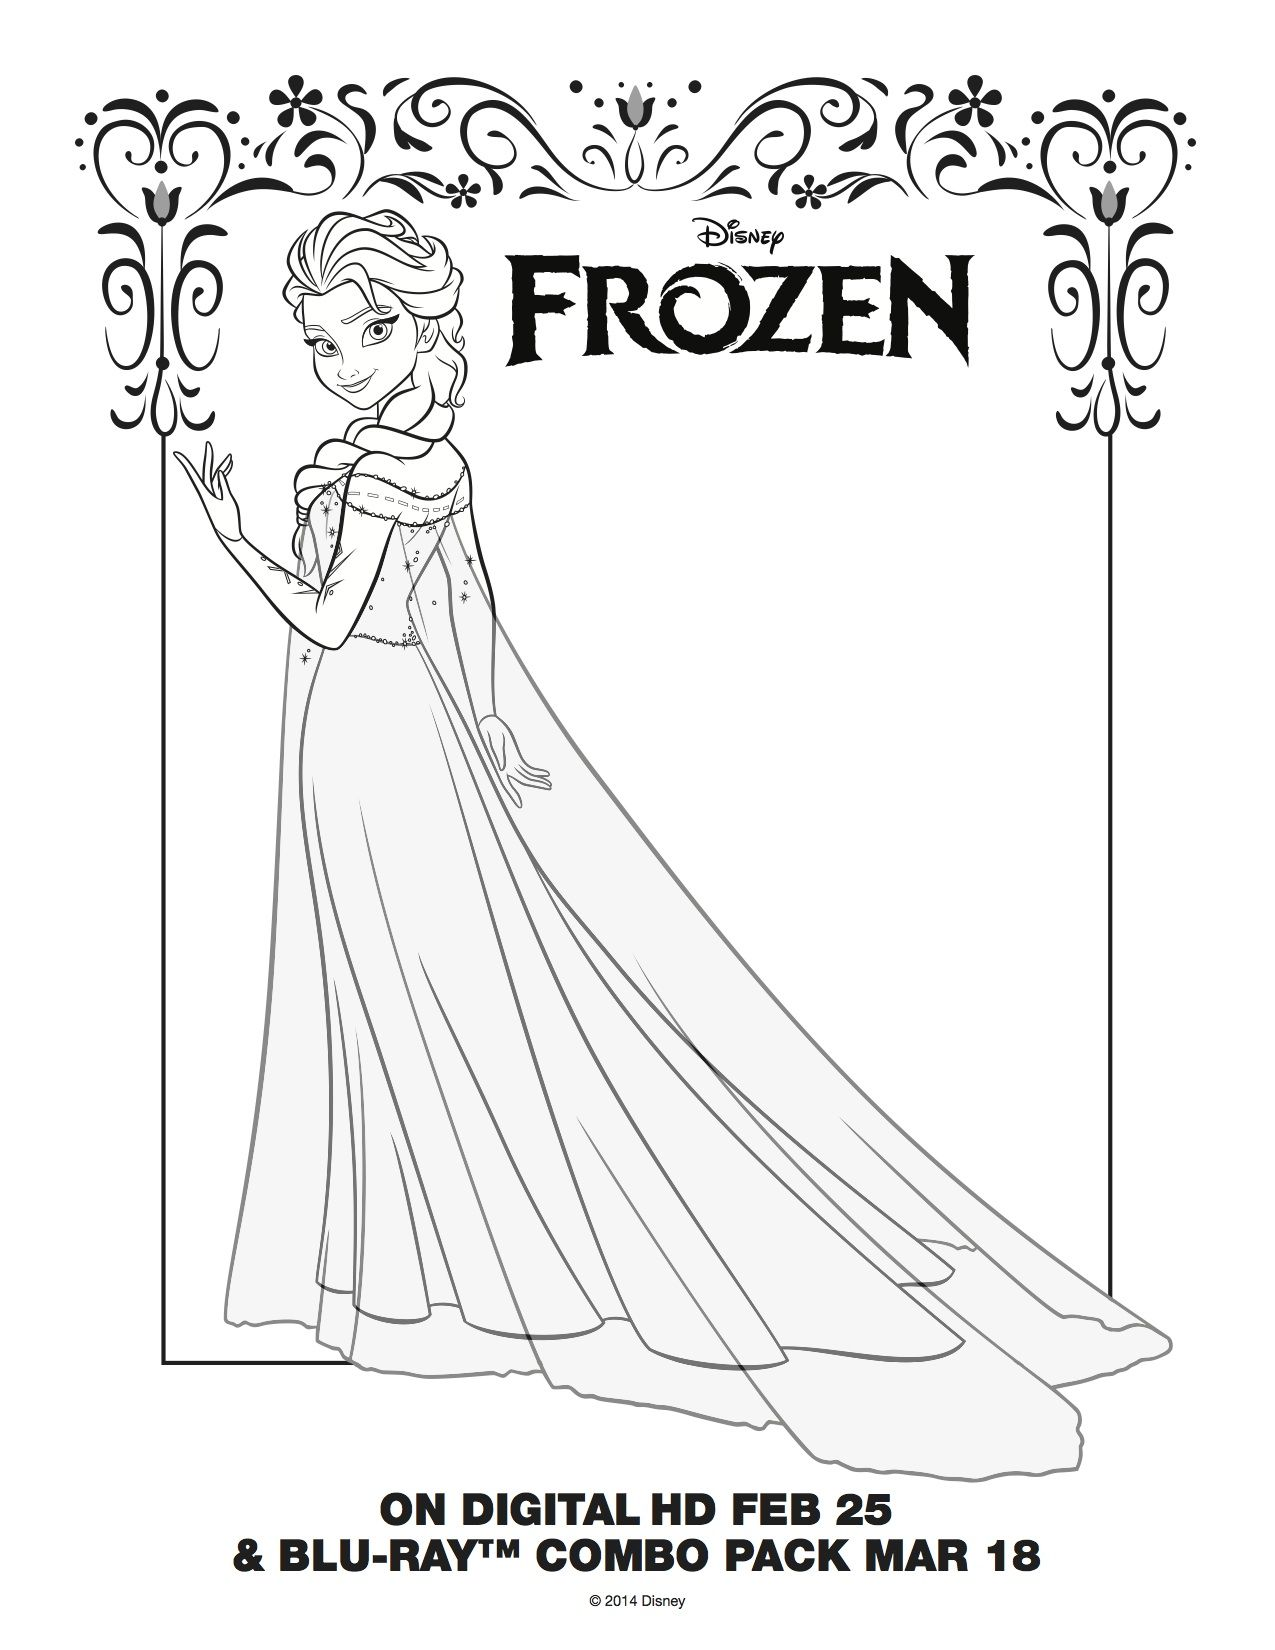 Coloring pages frozen - Frozen Hd Wallpaper And Background Photos Of Frozen Elsa Coloring Page For Fans Of Frozen Images 36726782